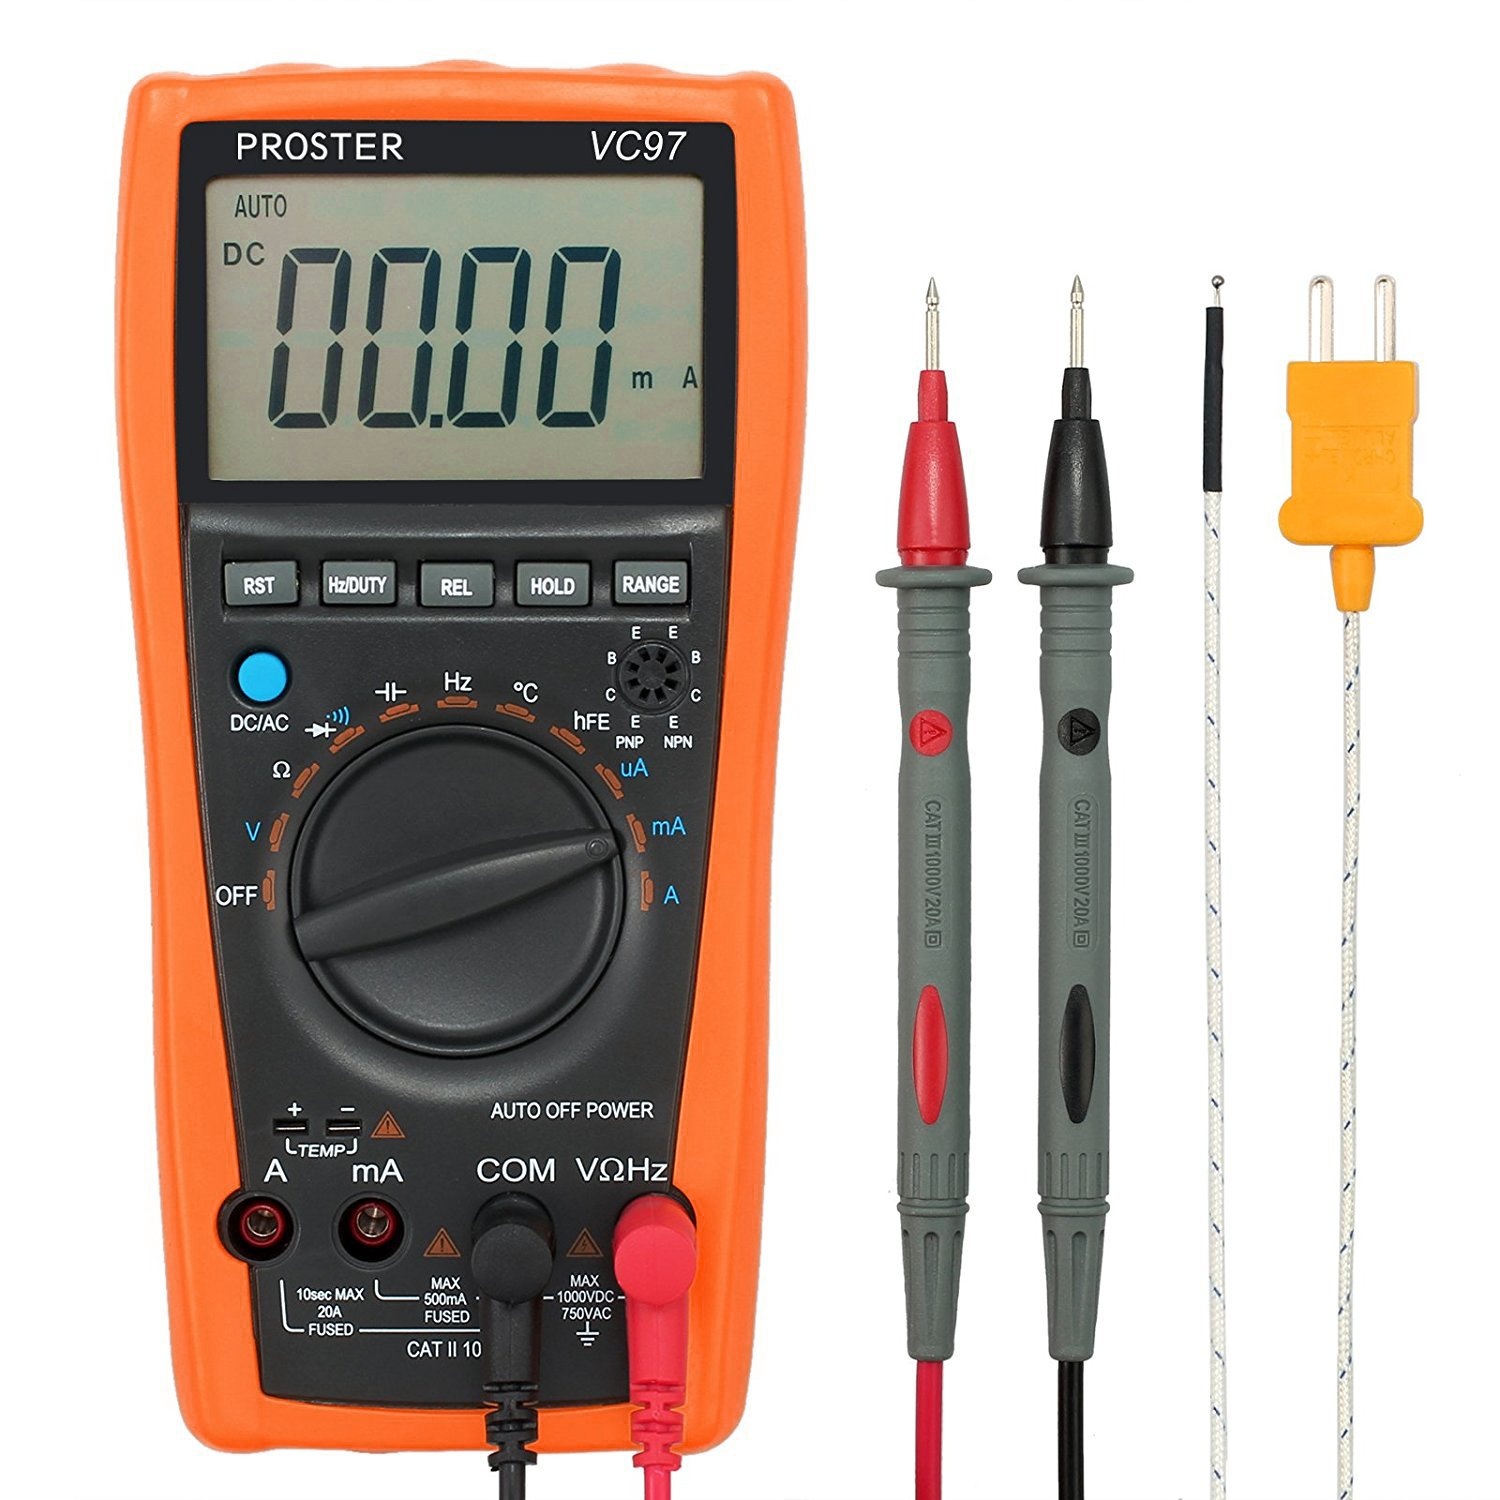 Proster Digital Multimeter 3999 LCD Auto Ranging Multi Meter with Capacitance Resistance DC AC Voltage Current Transistor Diode Continuity by Proster